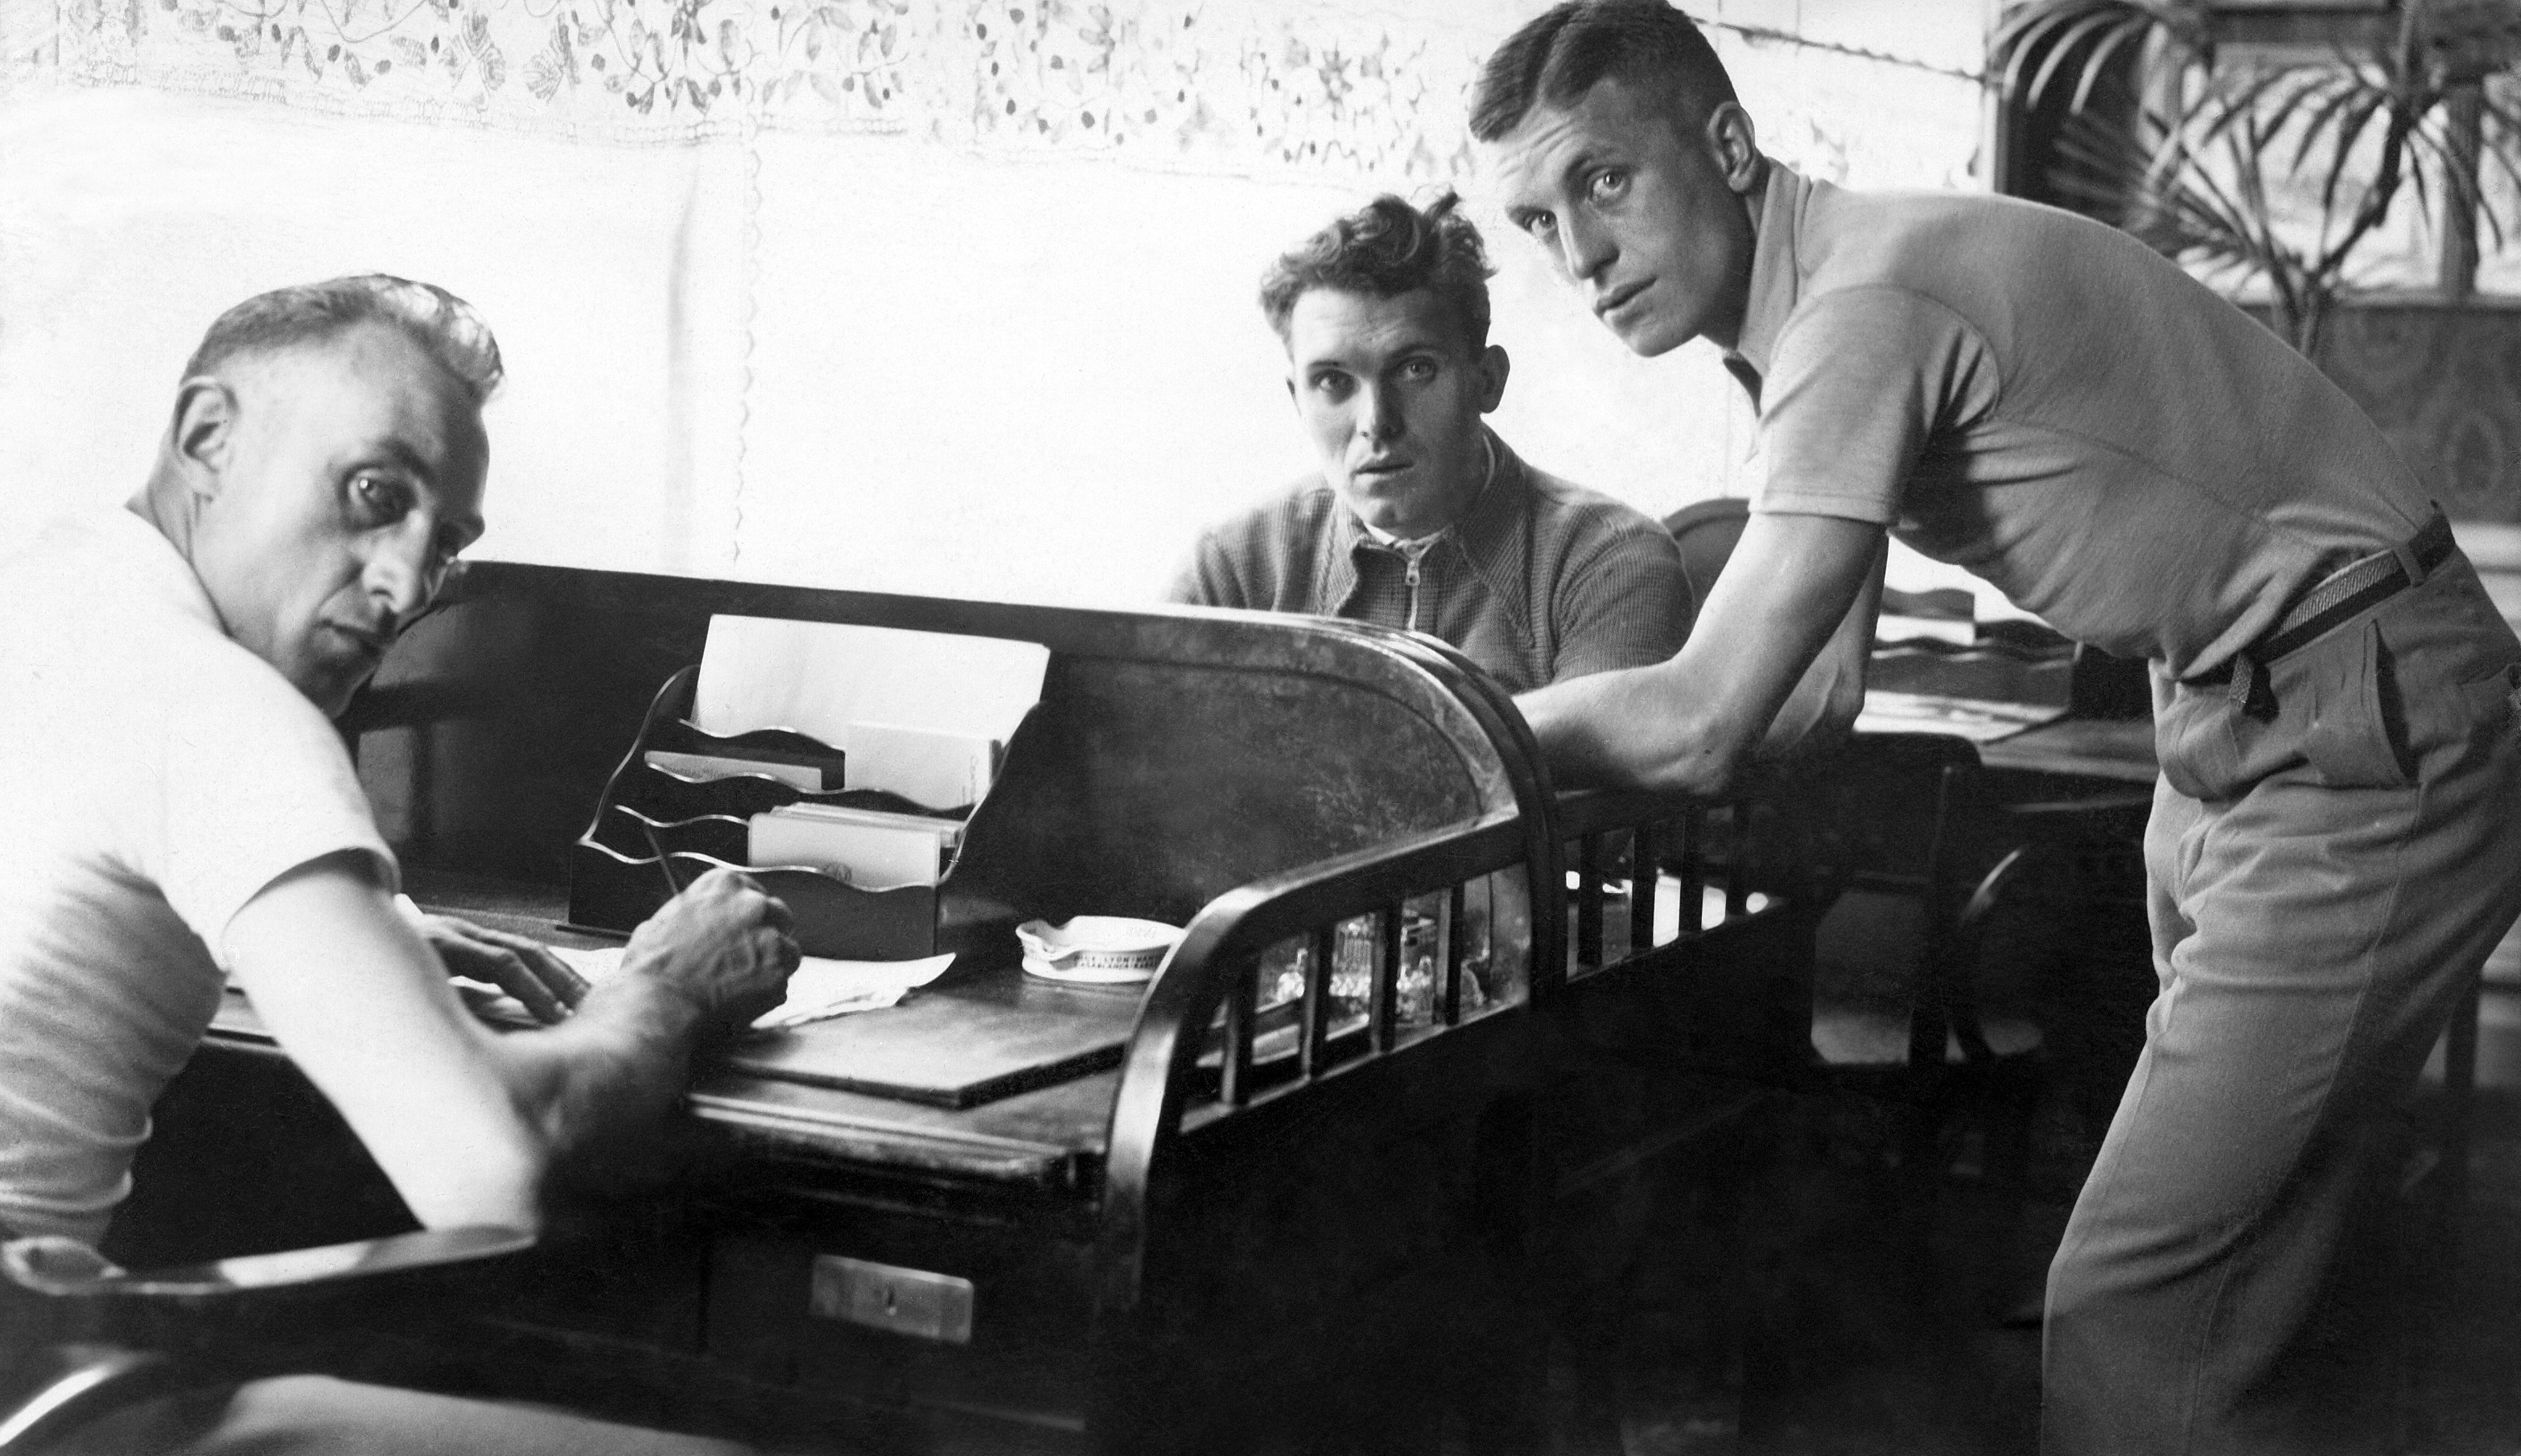 Belgian team racing cyclists Georges Ronsse (left), Frans Bonduel (center) and Jean Aerts (right) write letters during a rest time of the Tour de France, on July 8, 1932 in Nantes.